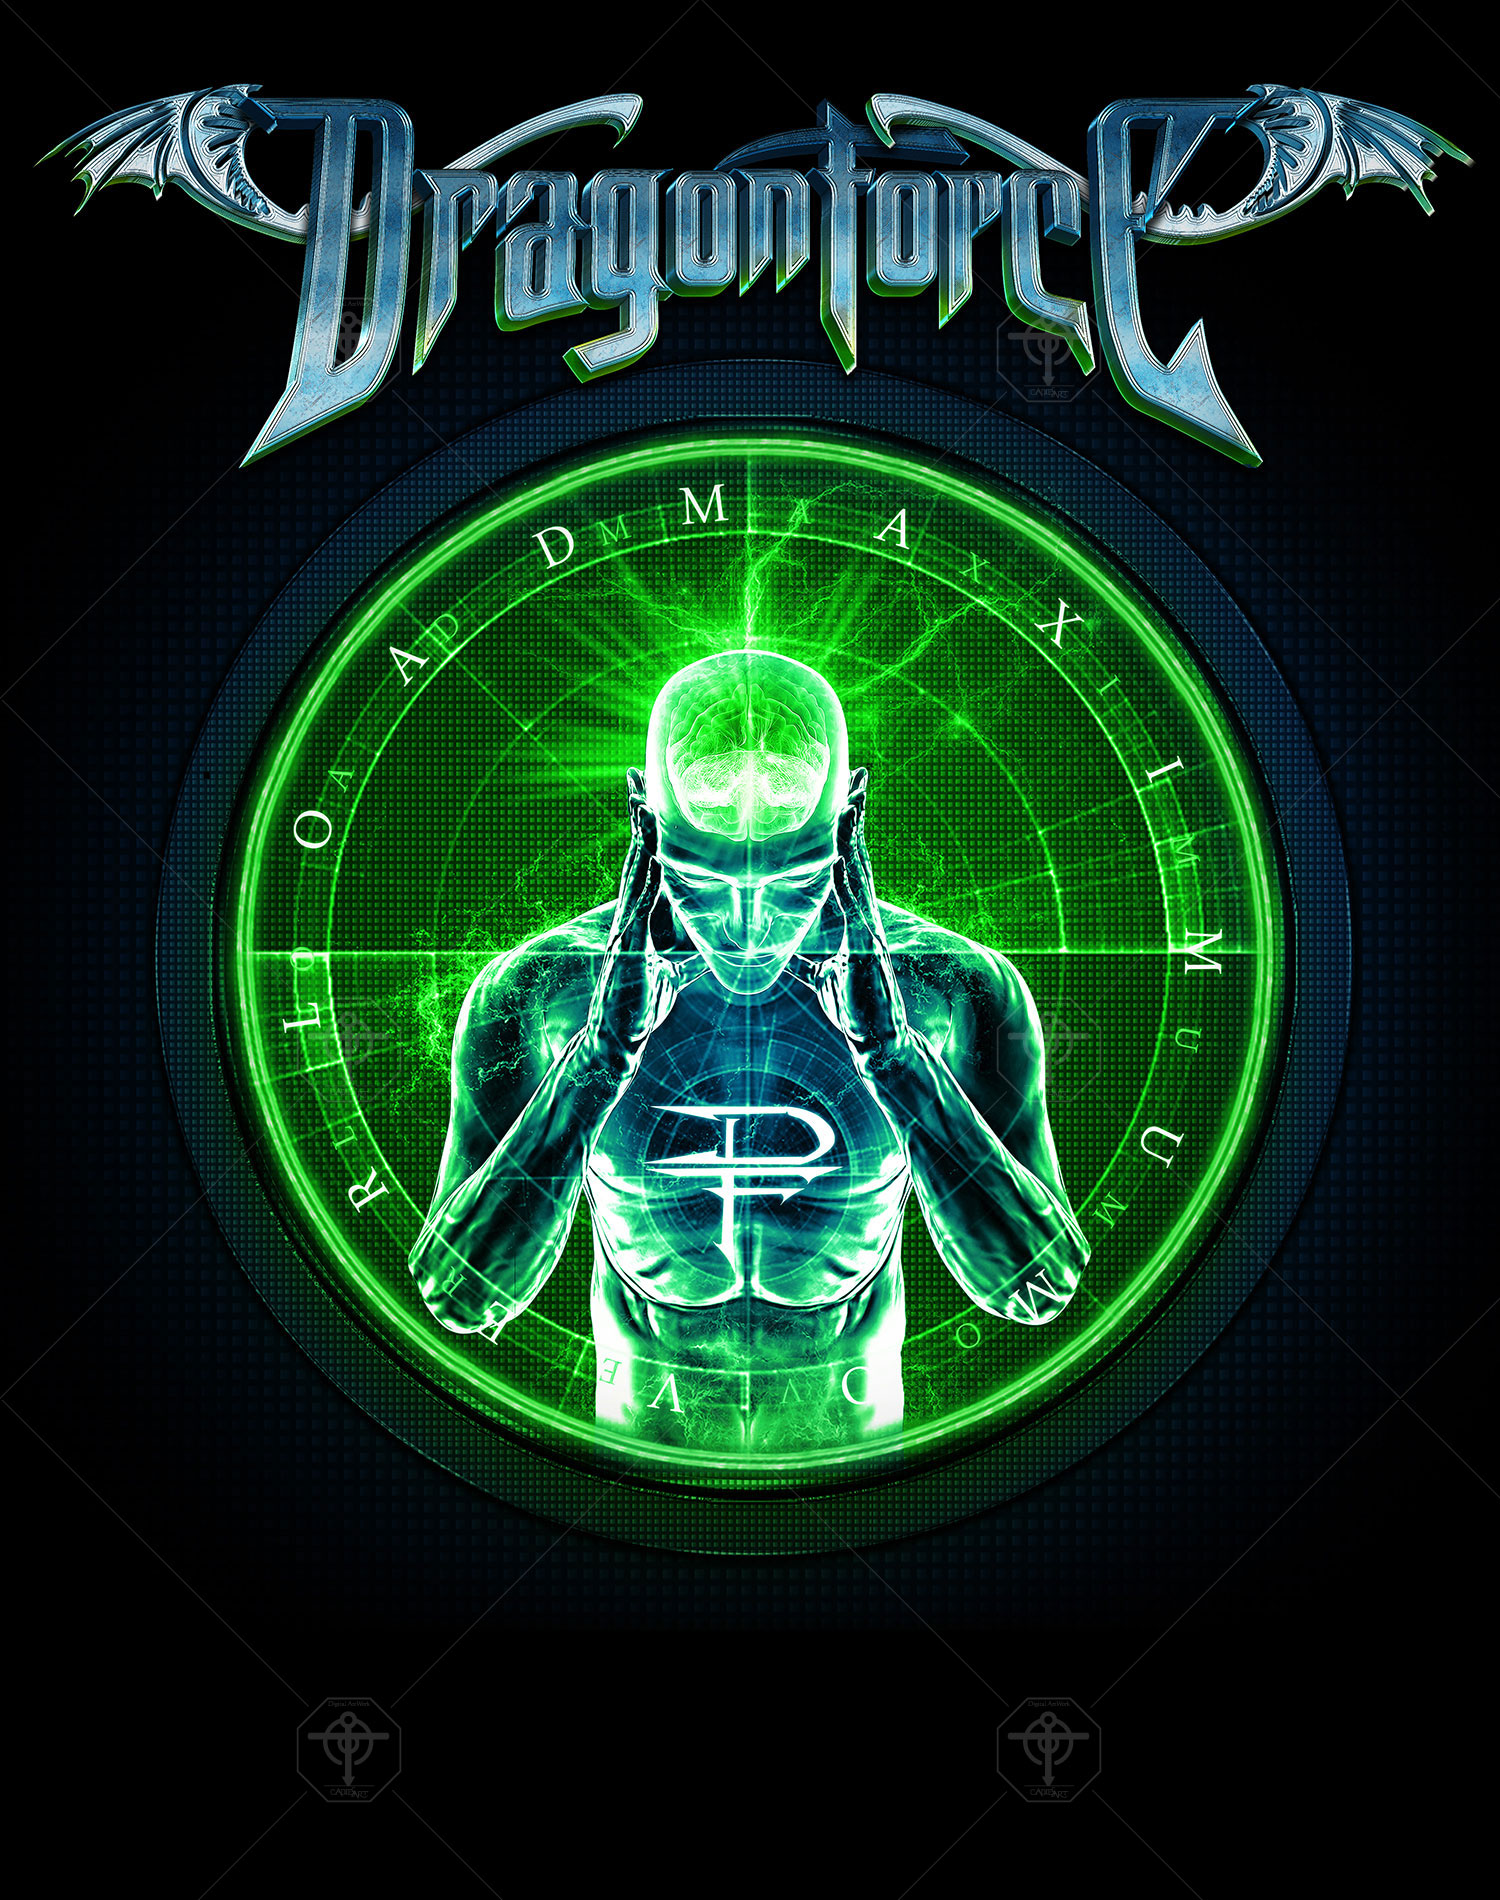 Dragonforce - In The Line Of Fire ... Larger Than Live